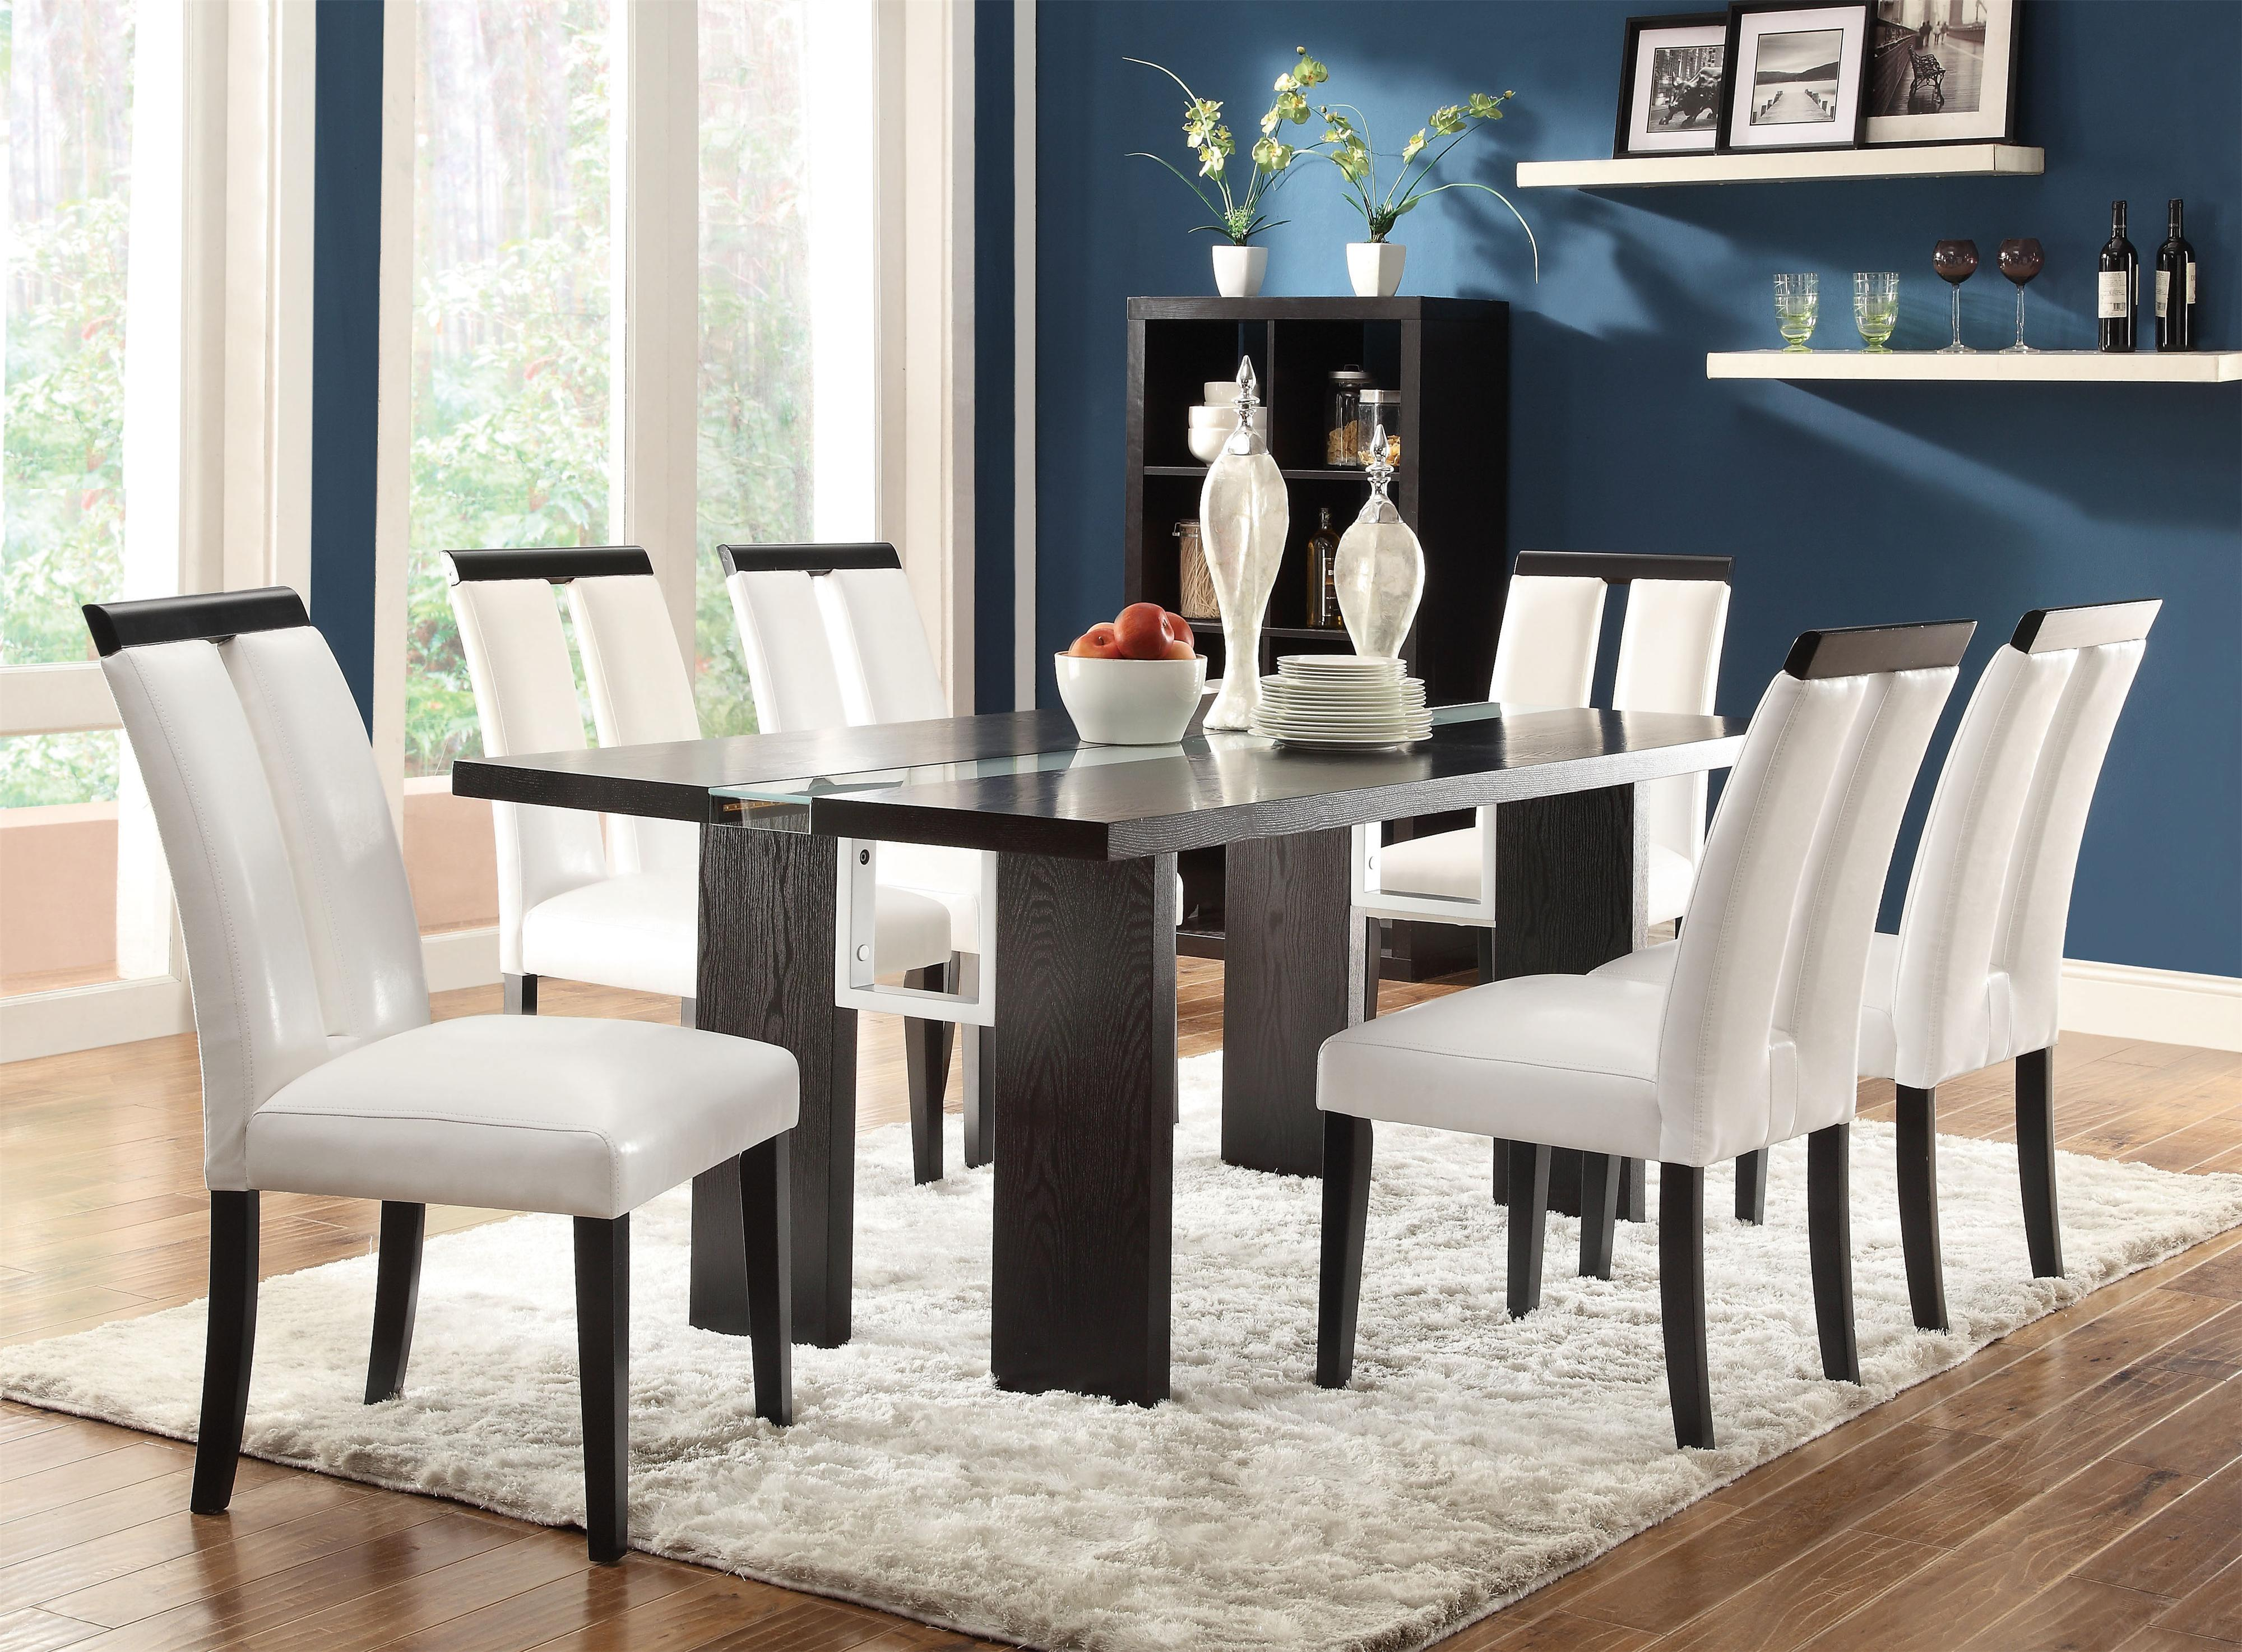 http://banahome.com/uploads/furniture/related/5vYhW6QDnlproducts-coaster-color-kenneth%20-%20-181734809_104561-b2.jpg